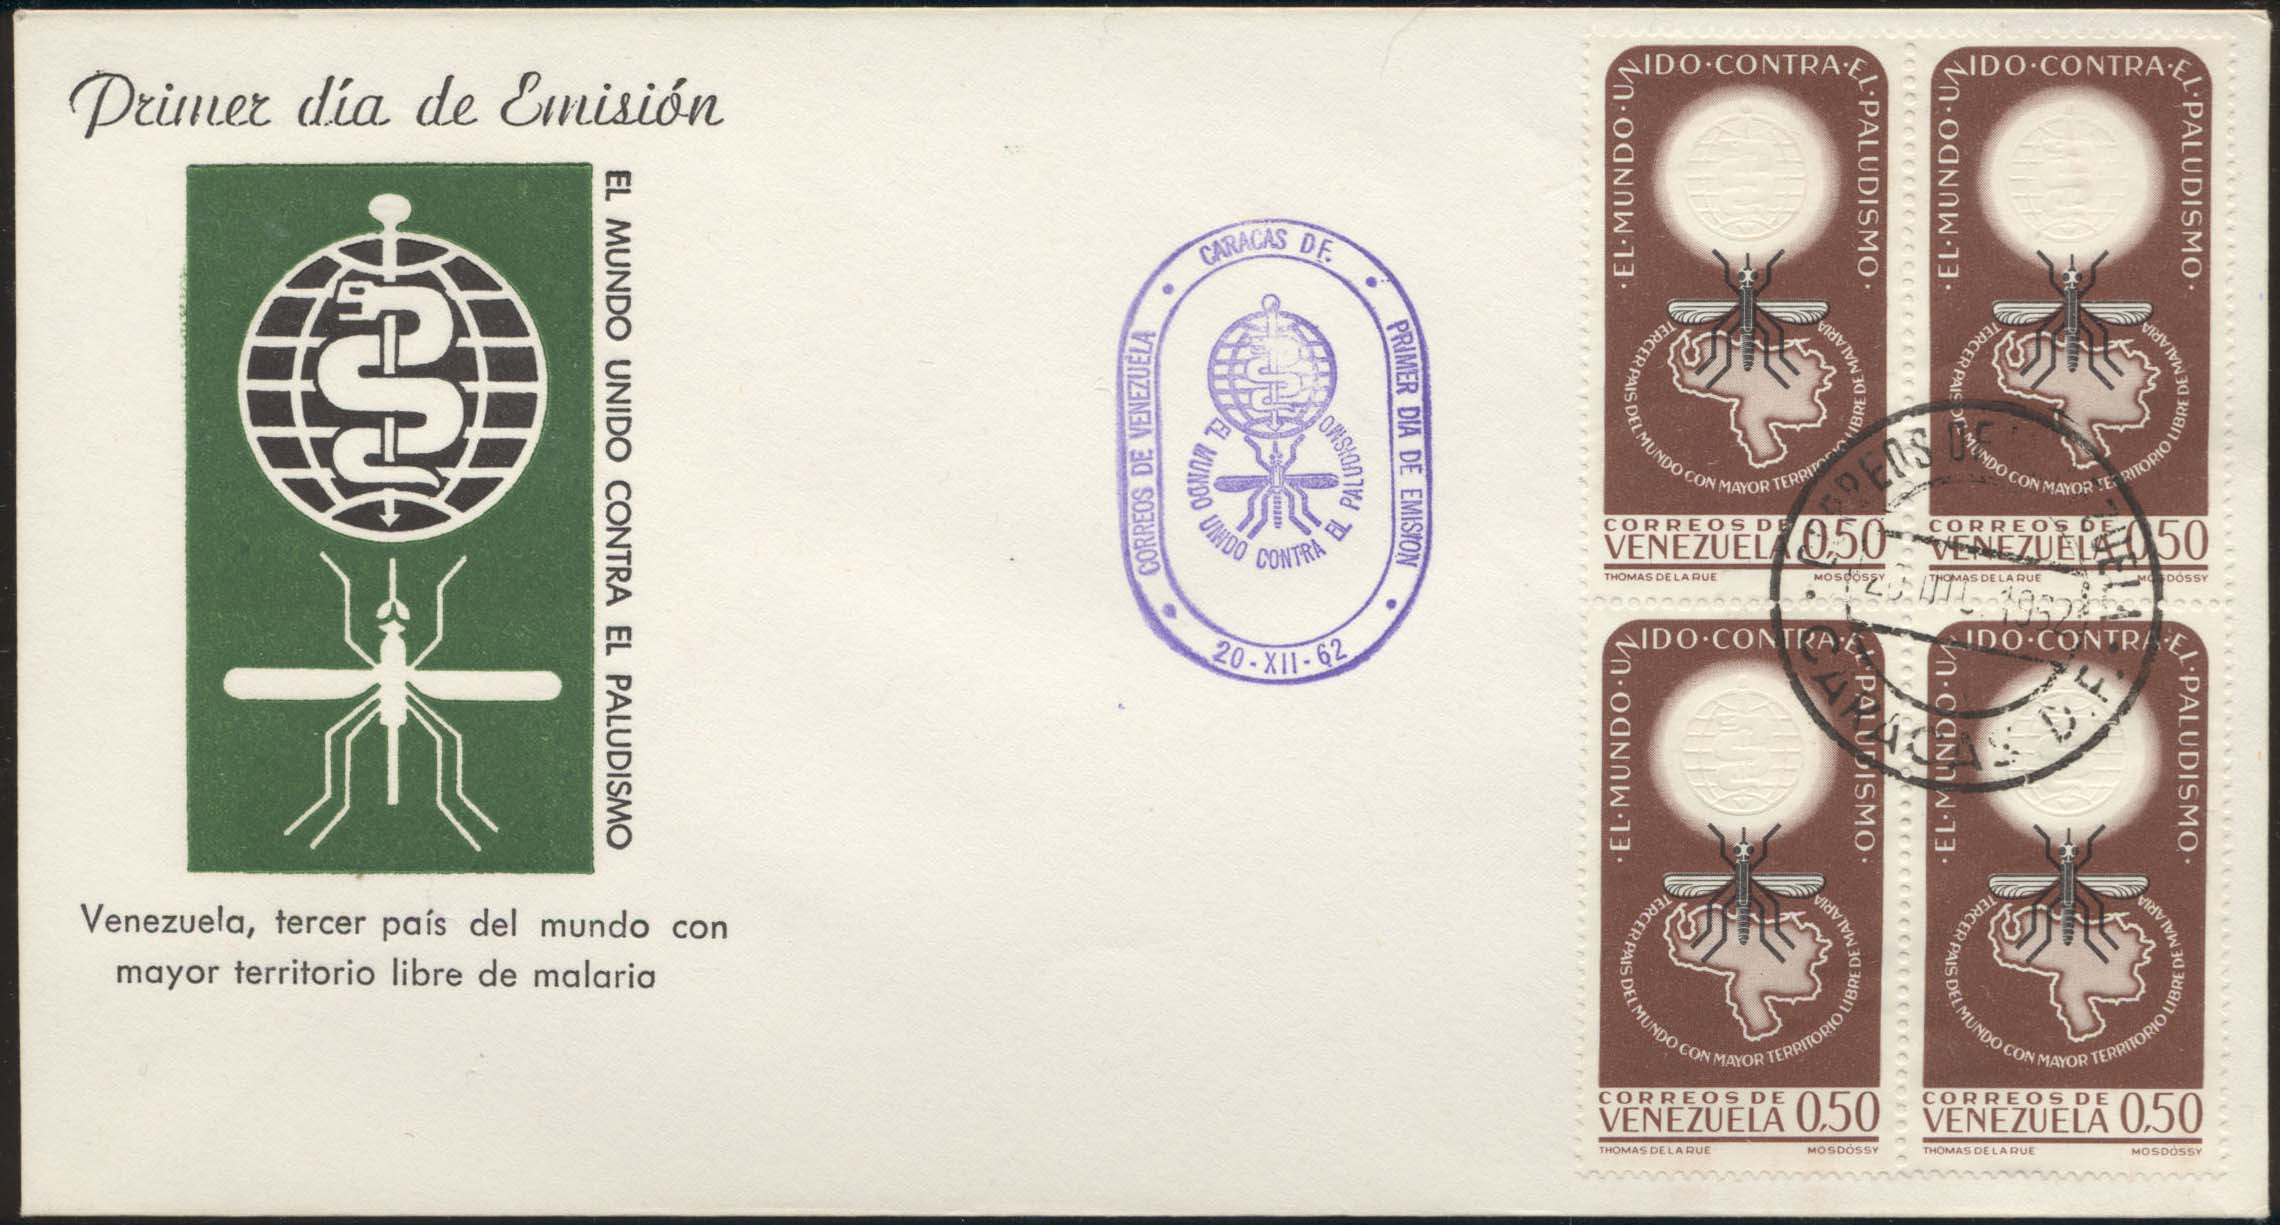 Scott 825 (Block of 4) (FDC w/ Symbol/Mosquito (Green) (Purple Cancellation))